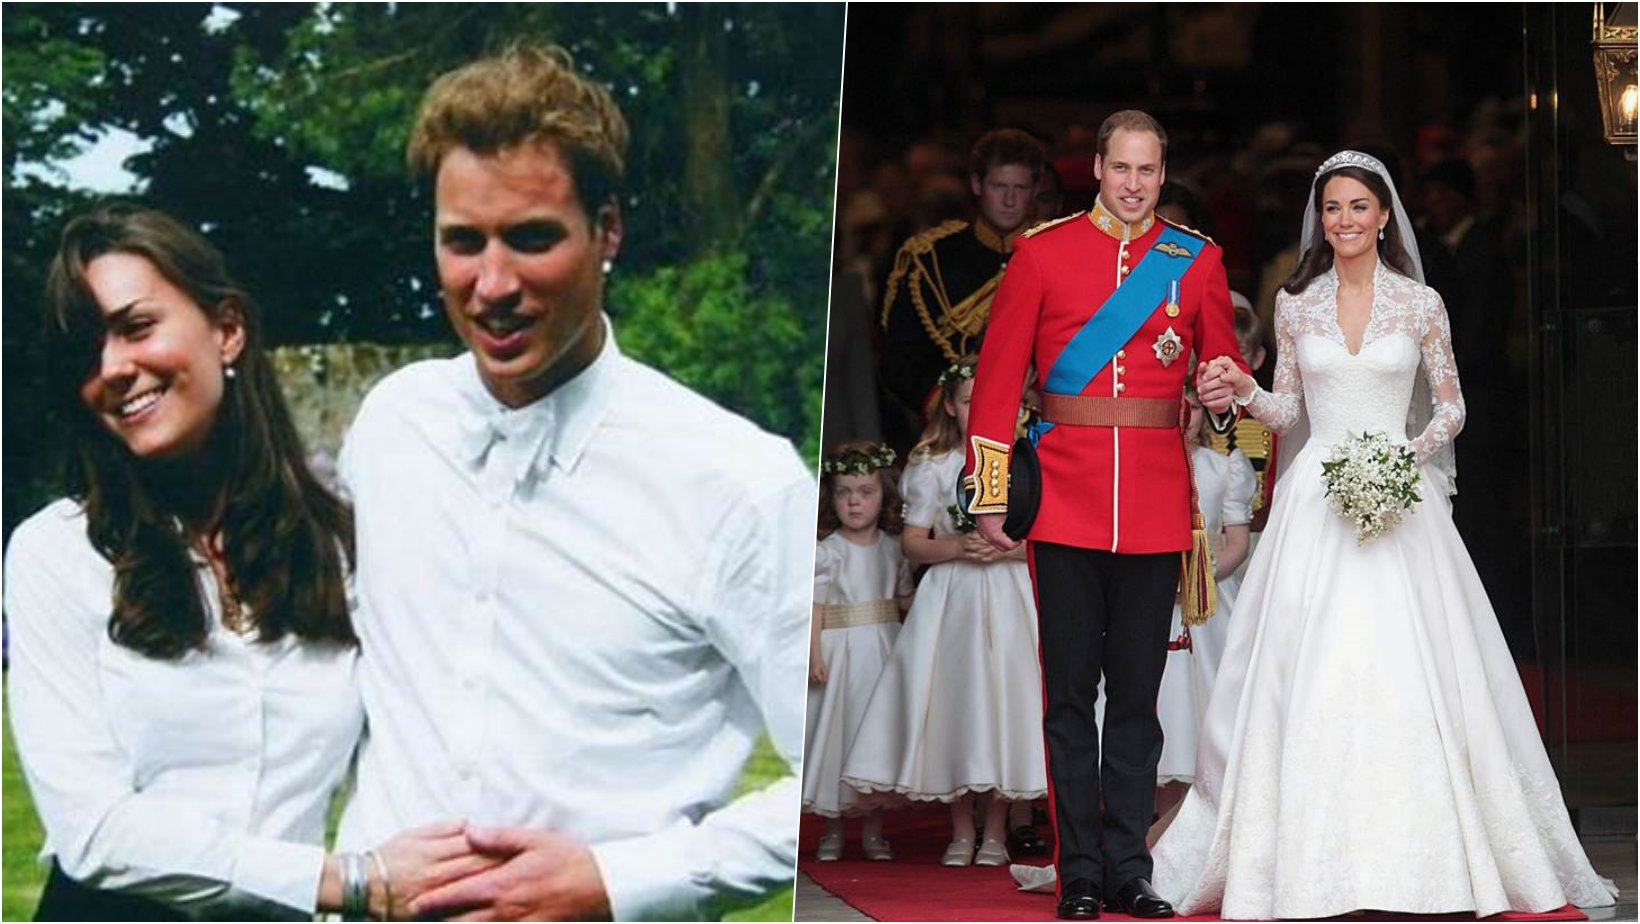 6 facebook cover 27.png?resize=1200,630 - Woman Who Shared A Dorm With The Cambridges Reveals Surprising Stories Of The Royal Couple's Relationship In College